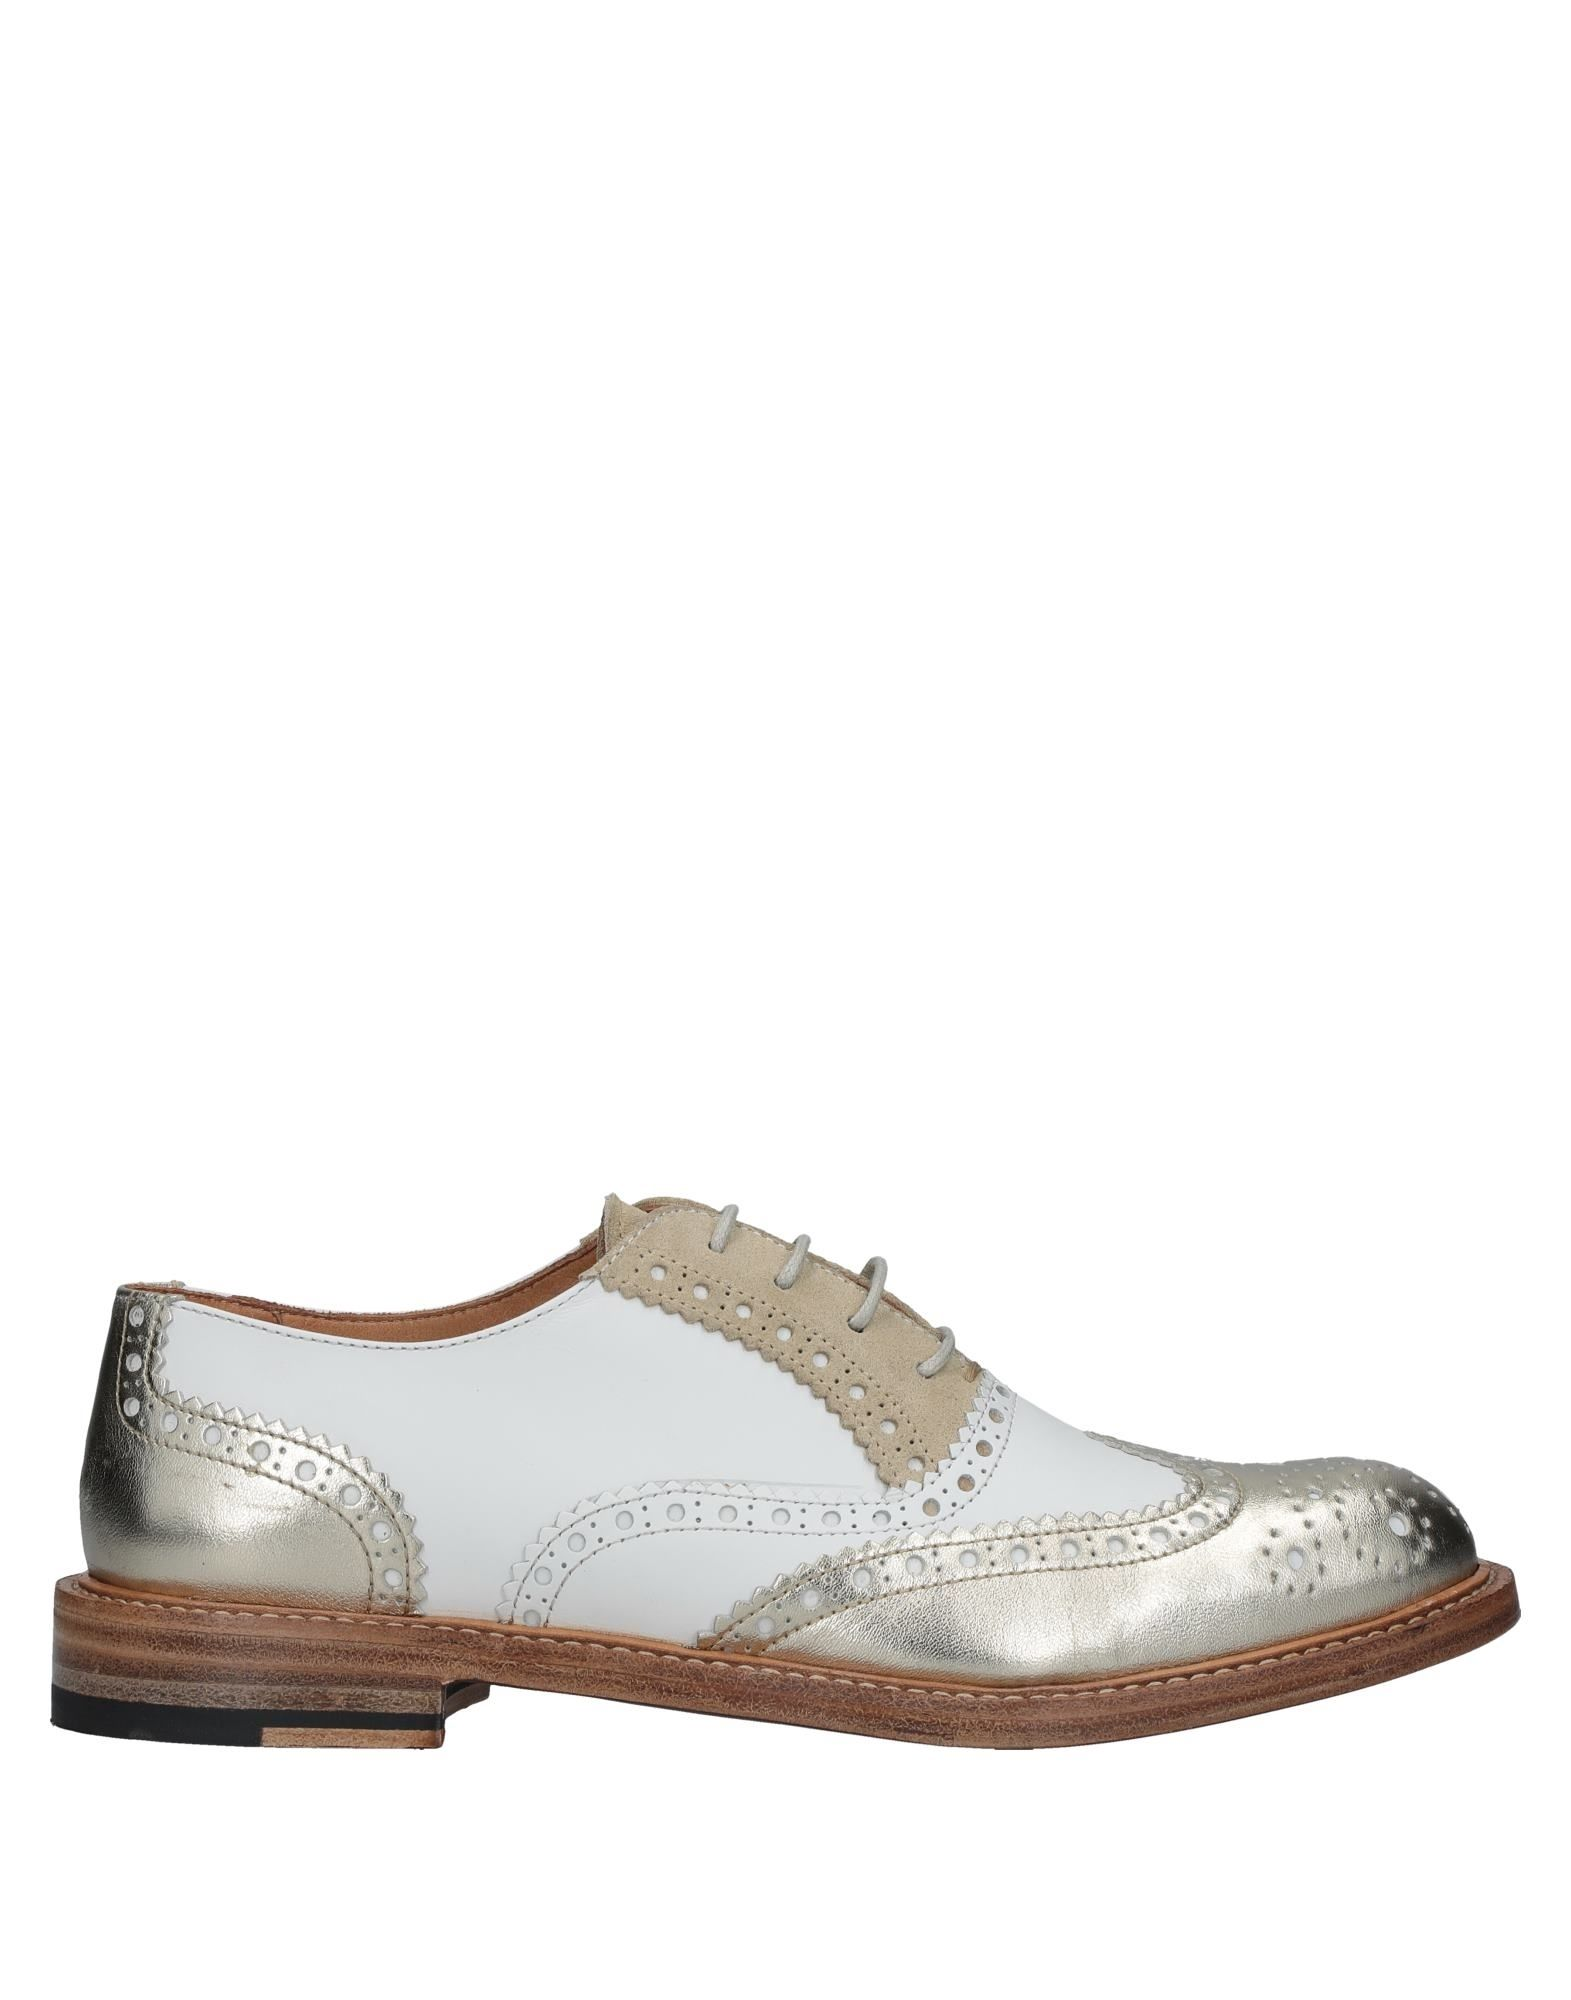 ORTIGNI Laced Shoes in White